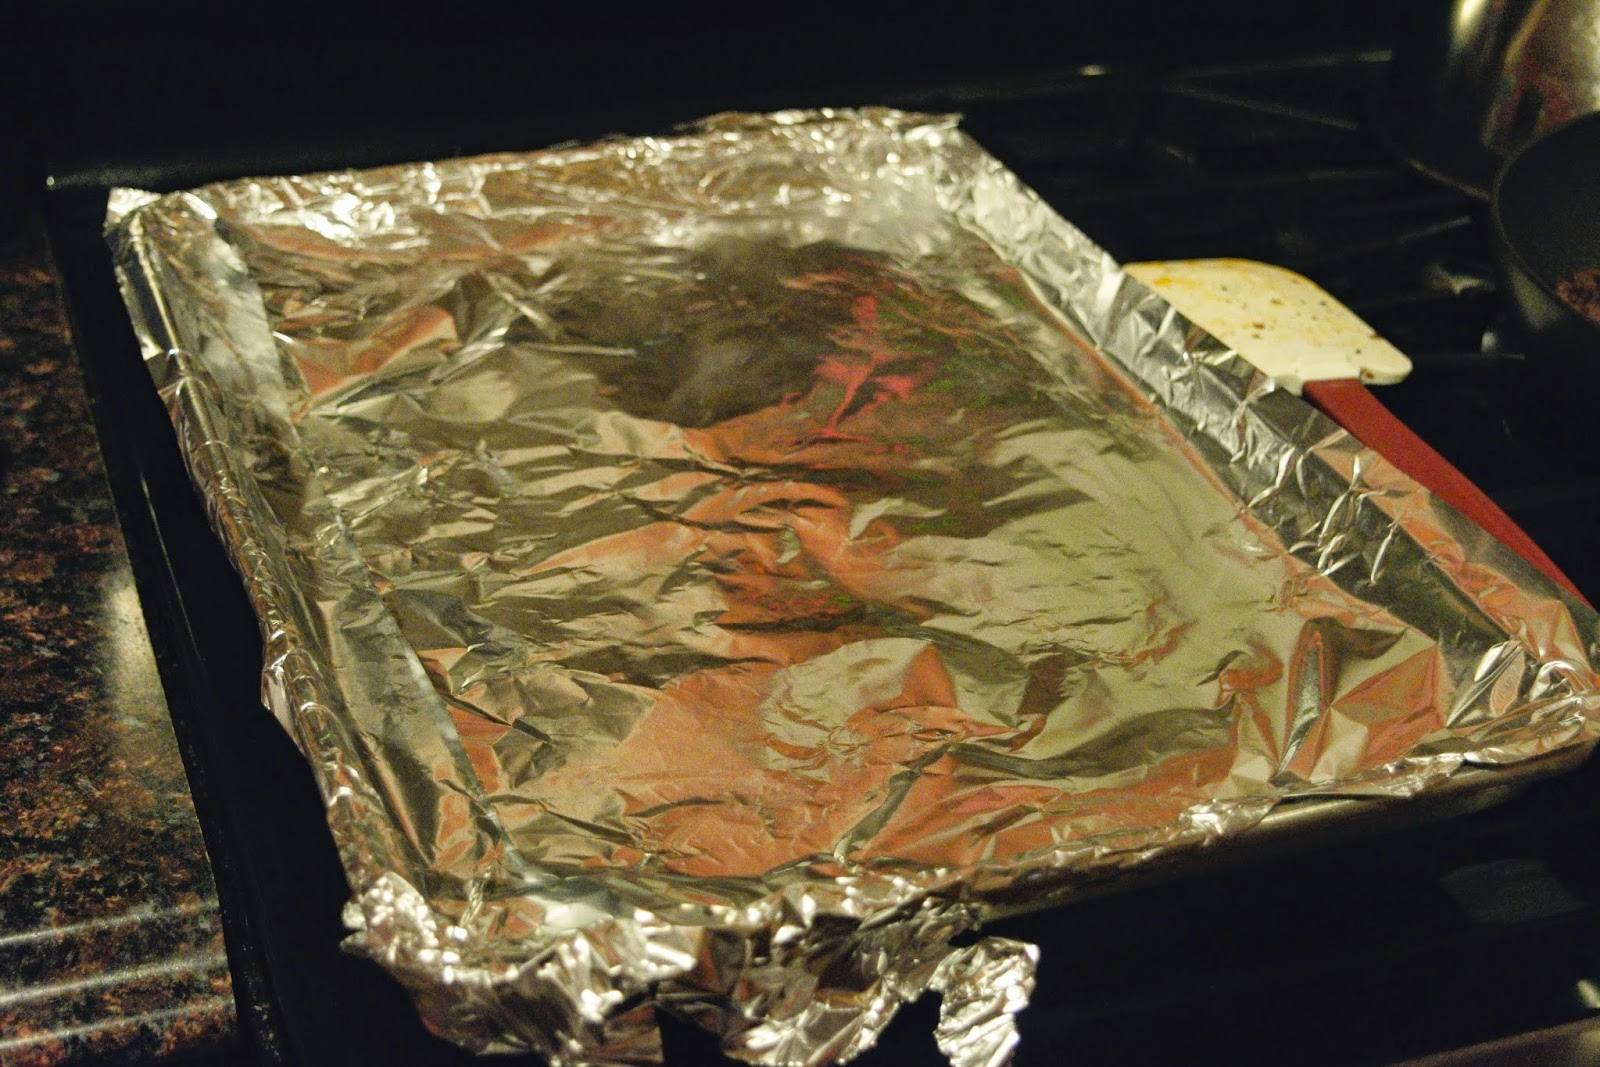 A baking sheet lined with foil.